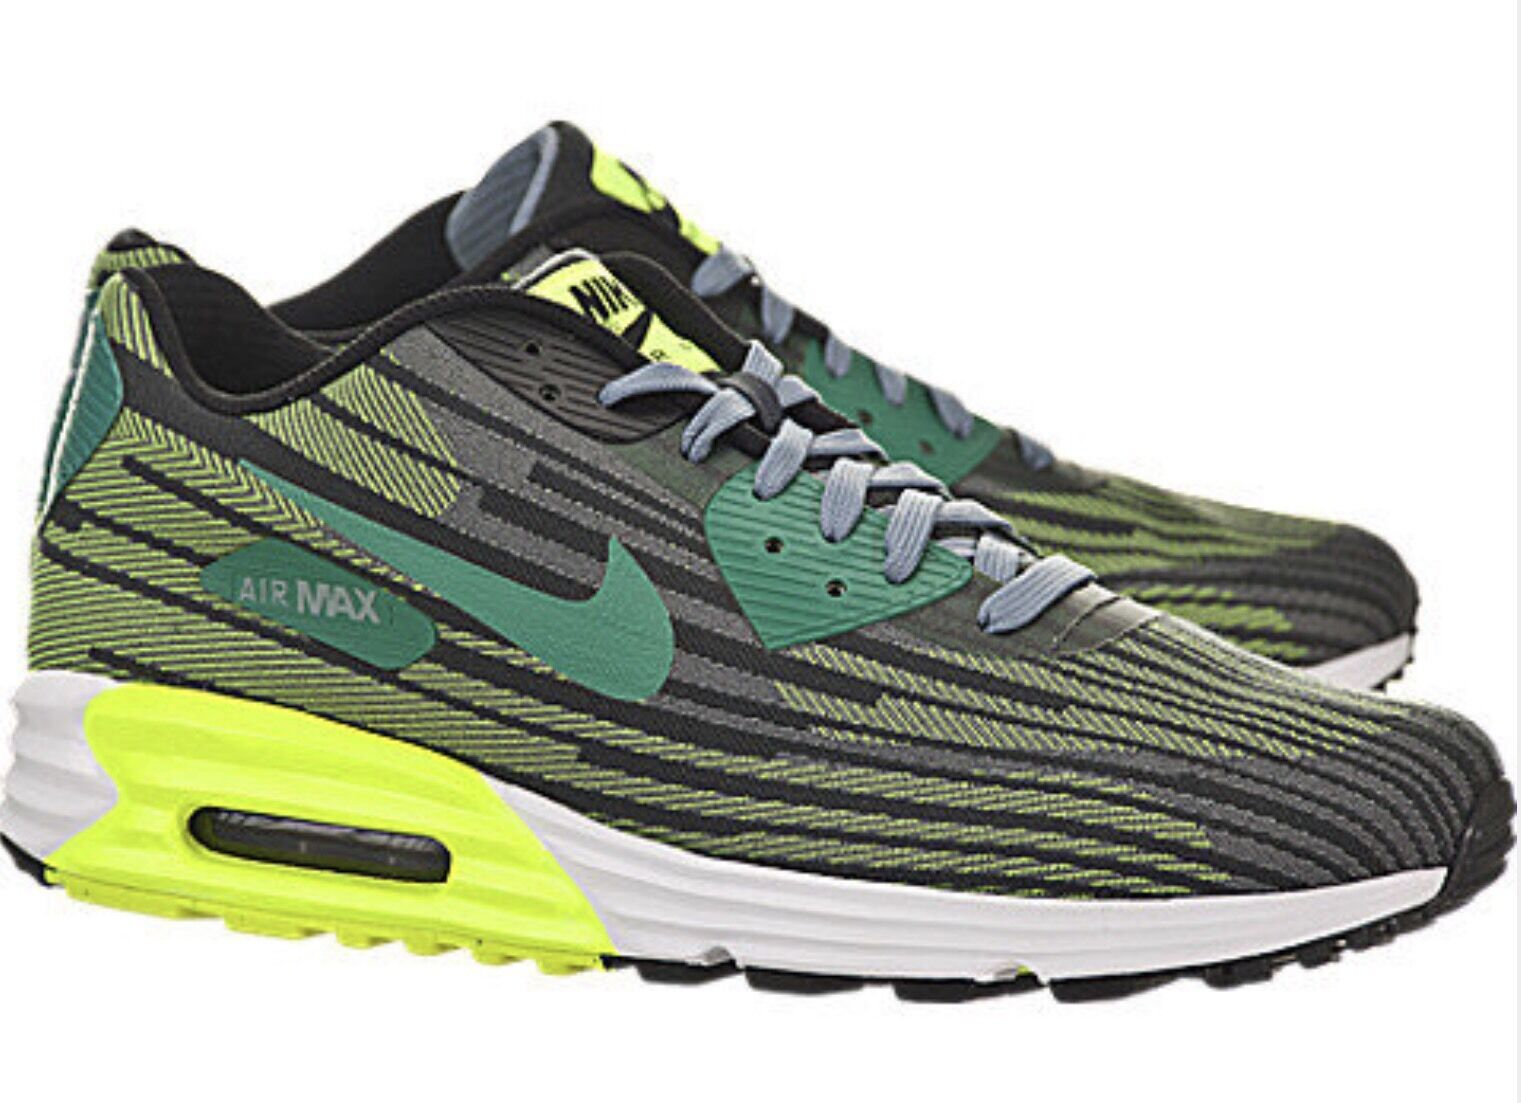 DS MENS NIKE AIR MAX LUNAR90 JCRD 654468 003 RUNNING SHOES NOBOXLID Price reduction